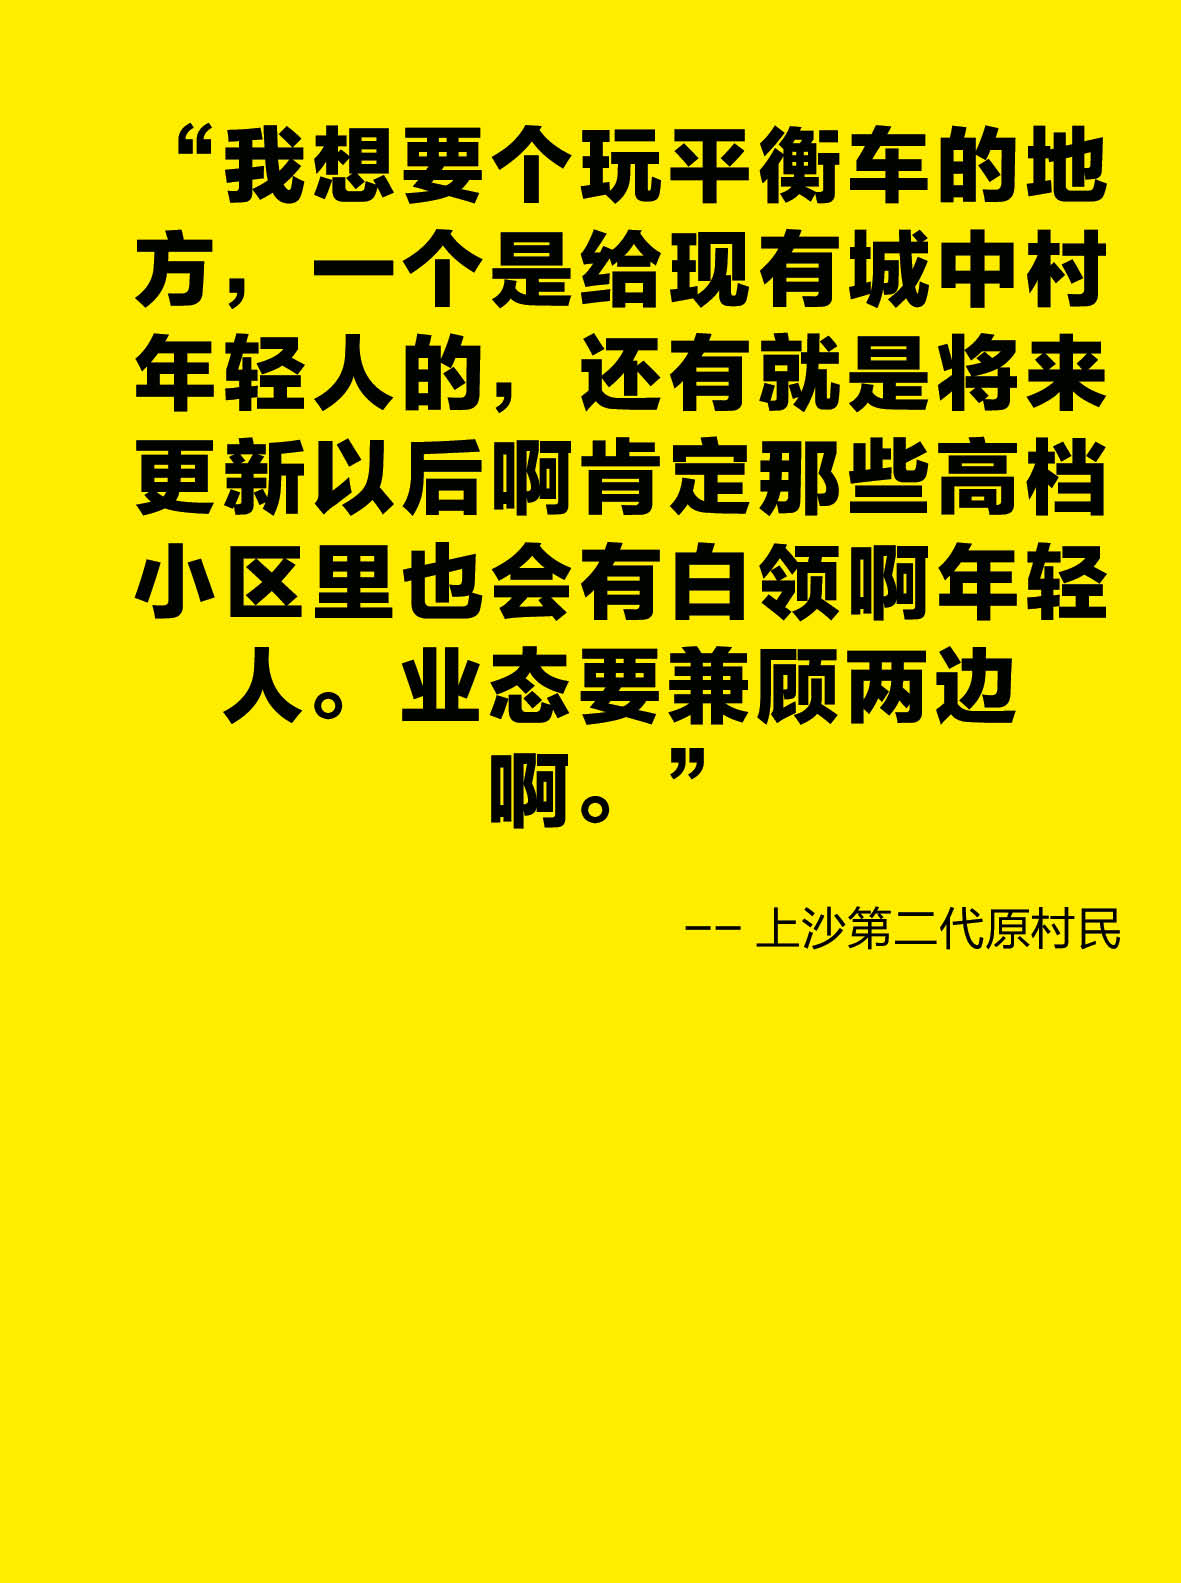 20180106_Shangsha Quotes test0326.jpg